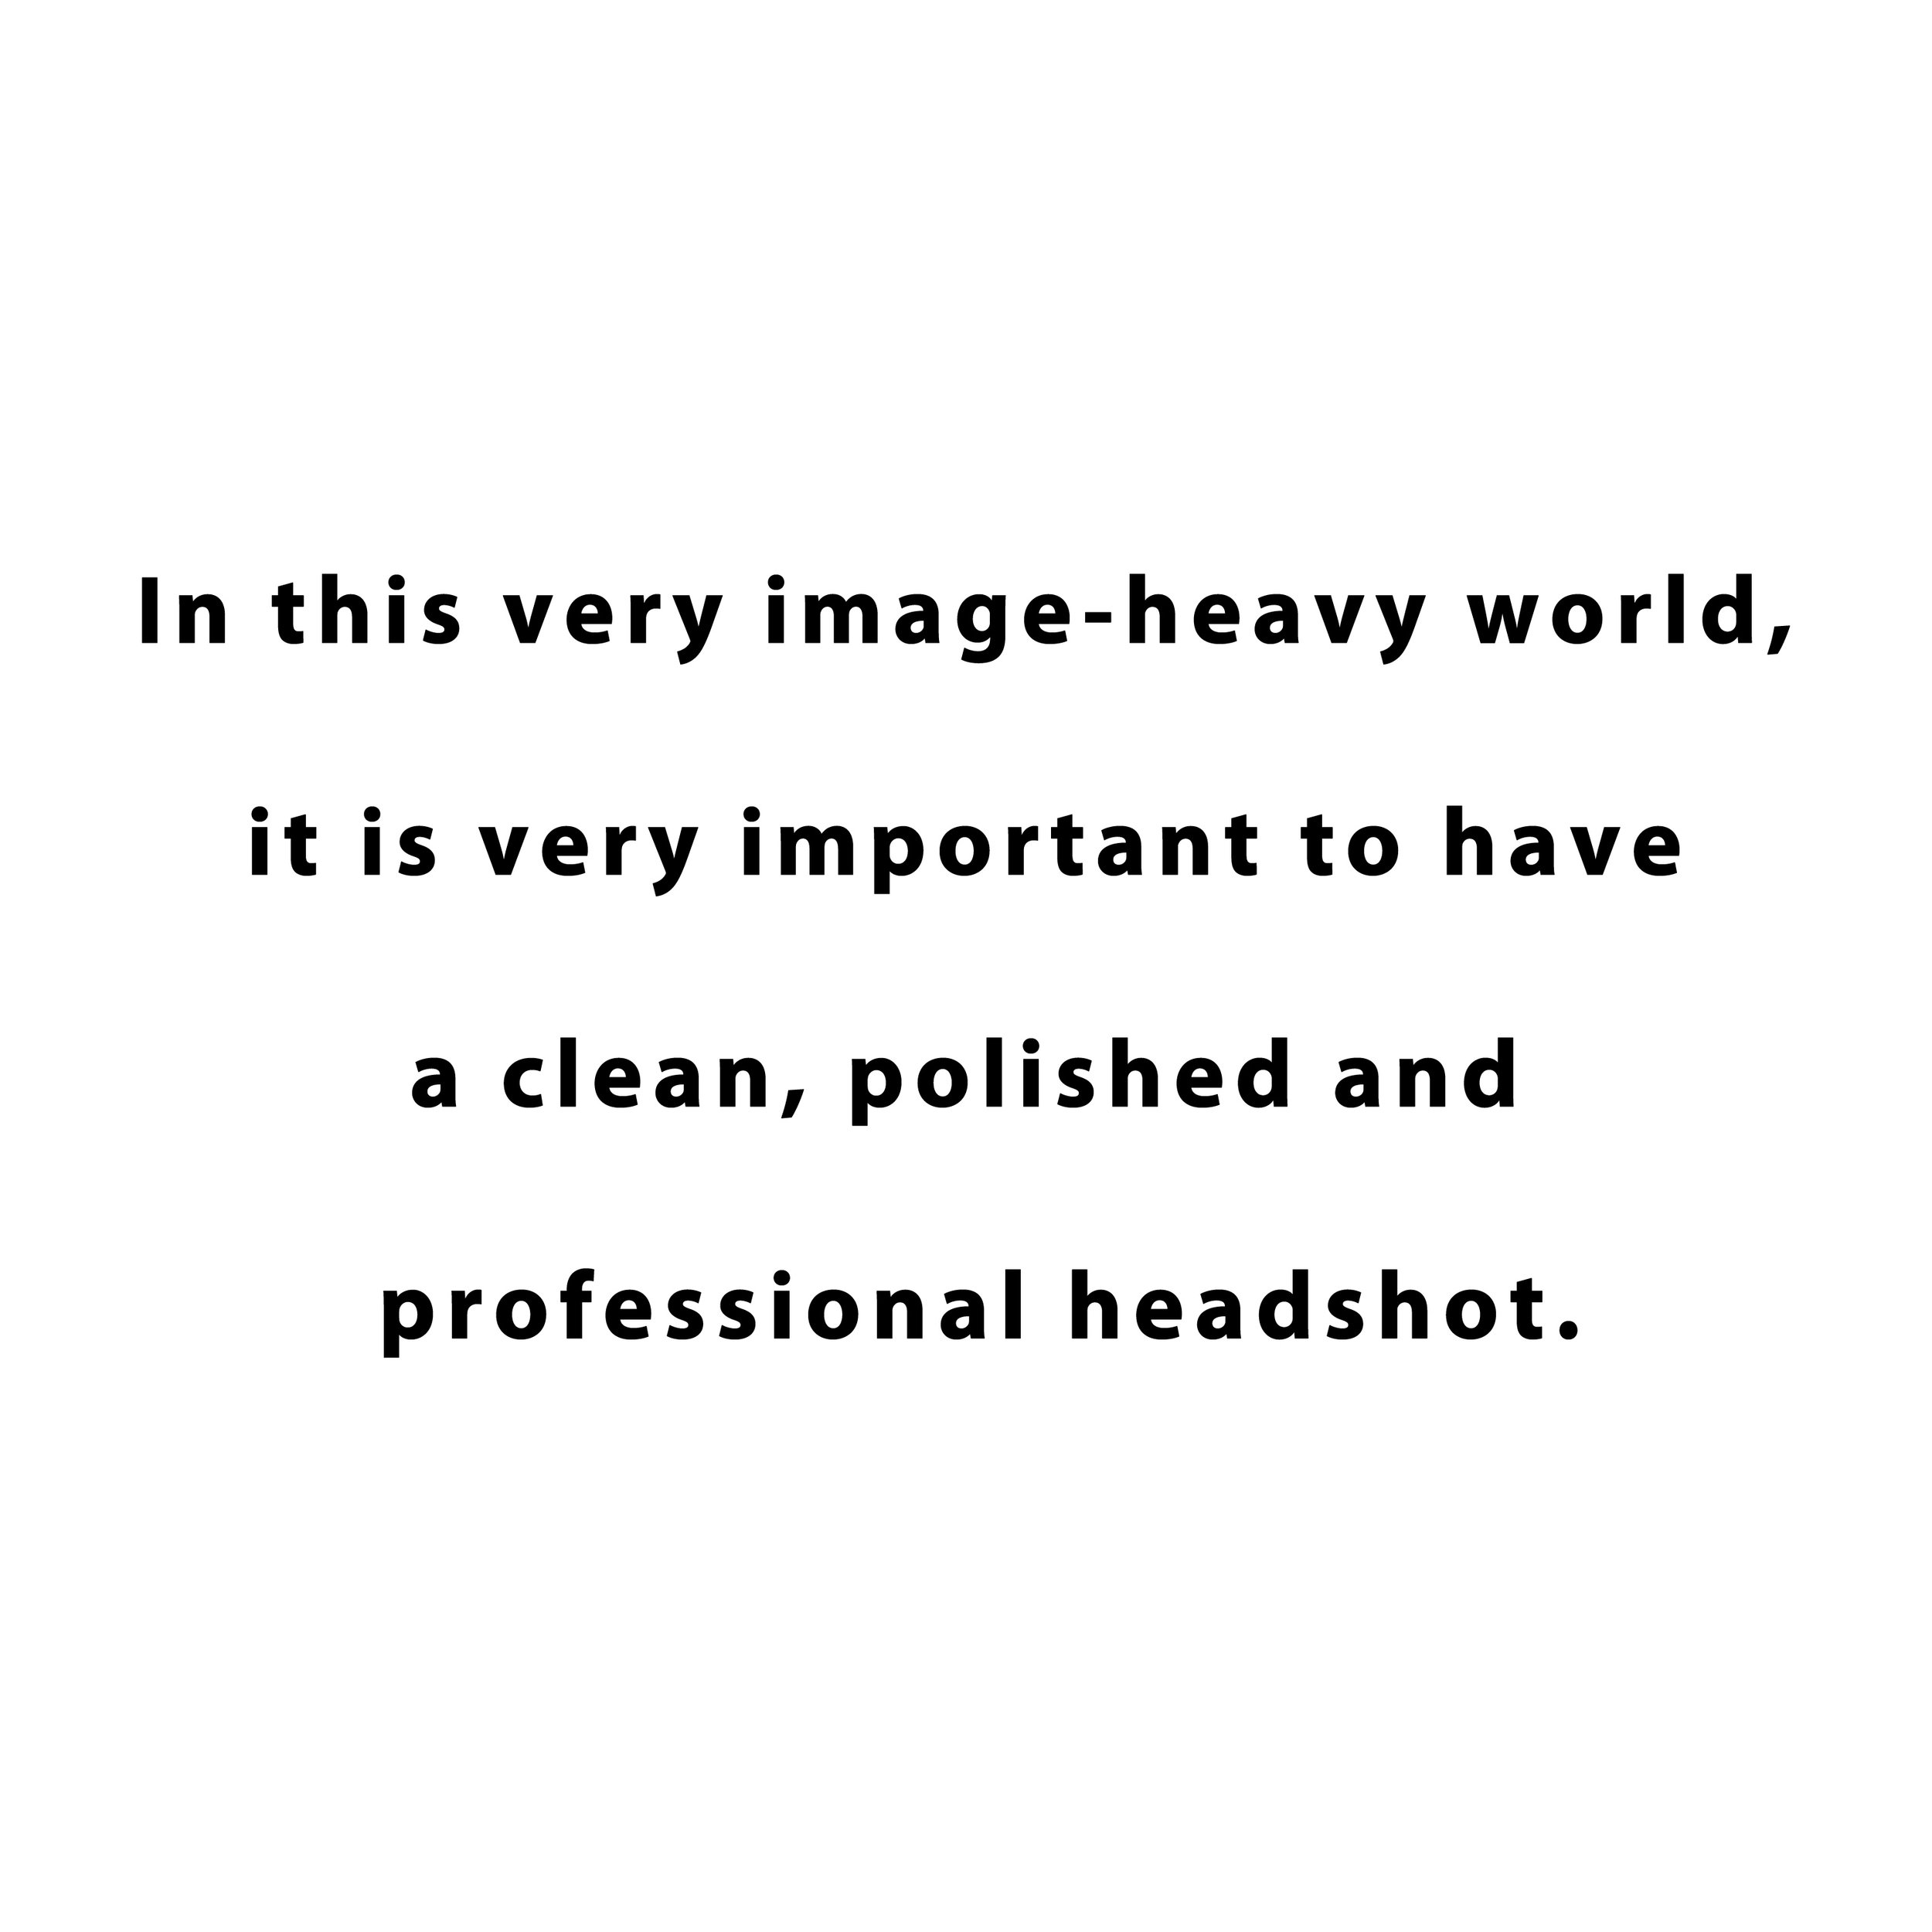 Headshots-Slide1 copy.jpg